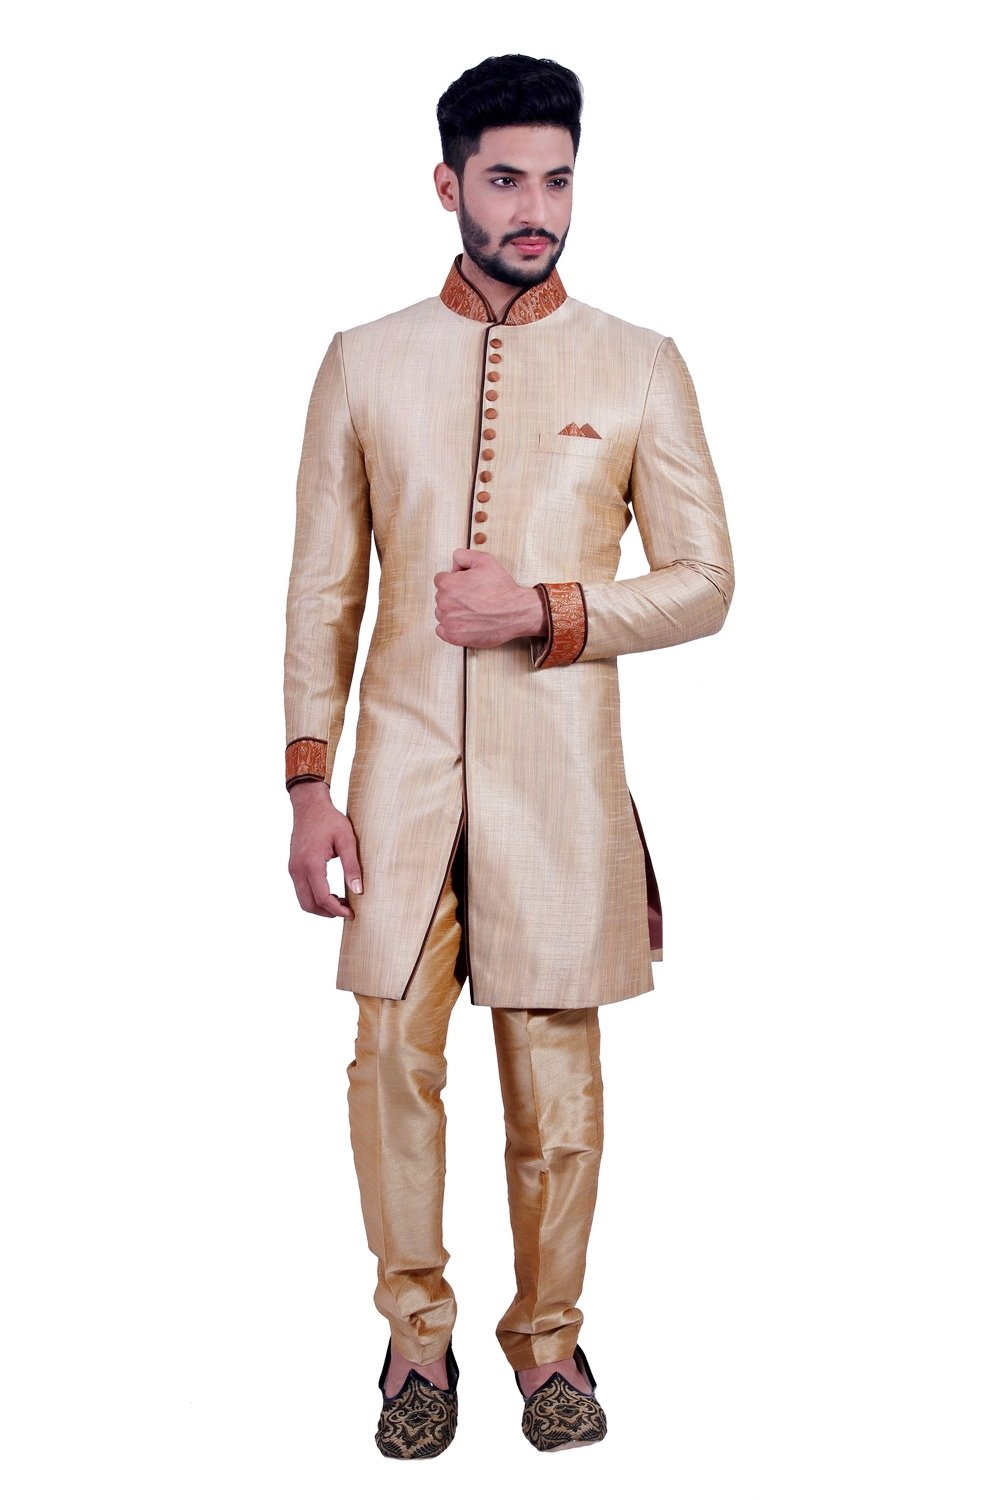 Daffodil Gold Indian Wedding Indo-Western Sherwani for Men